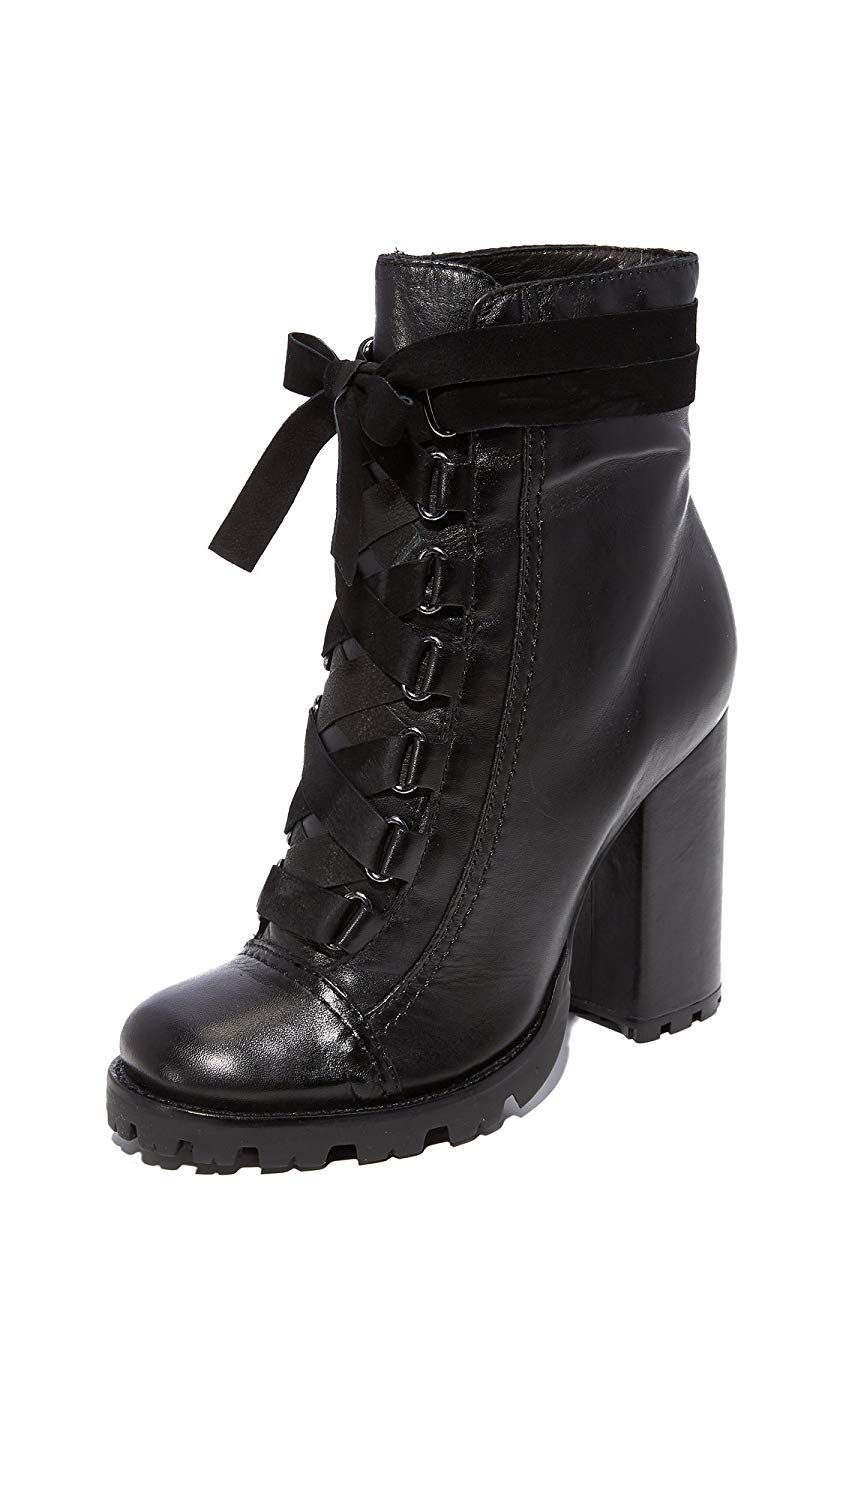 1f29703bf0 SCHUTZ Women s Lisie Fashion Boot     Nice to have you for visiting our  photo. (This is an affiliate link)  womensmidcalfboots